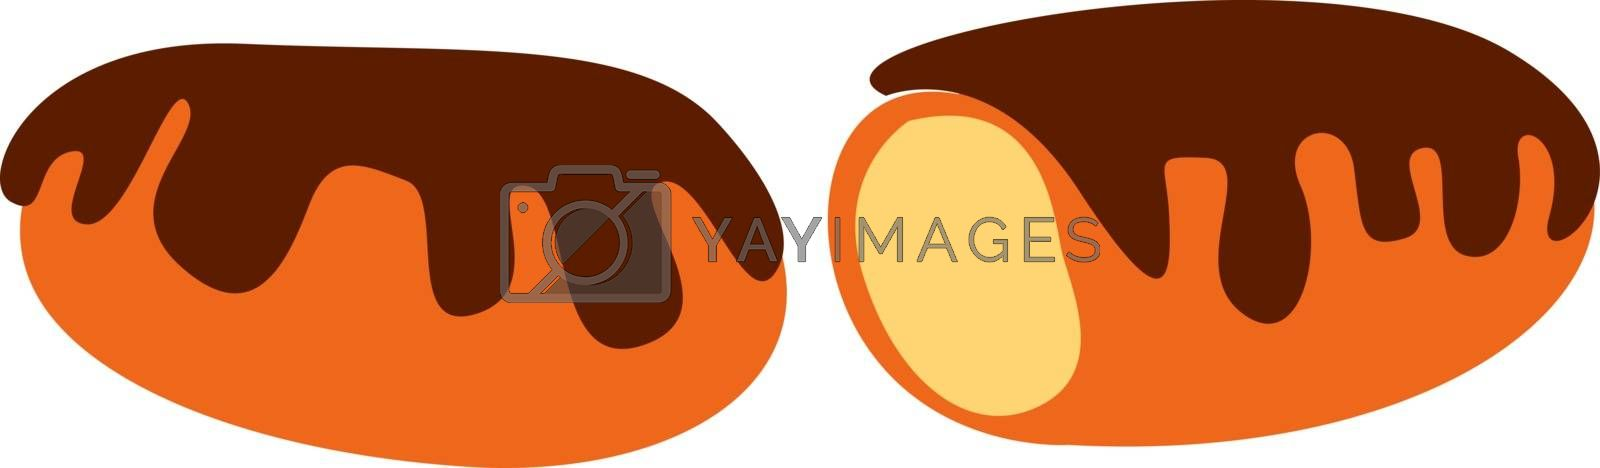 Eclair, illustration, vector on white background.